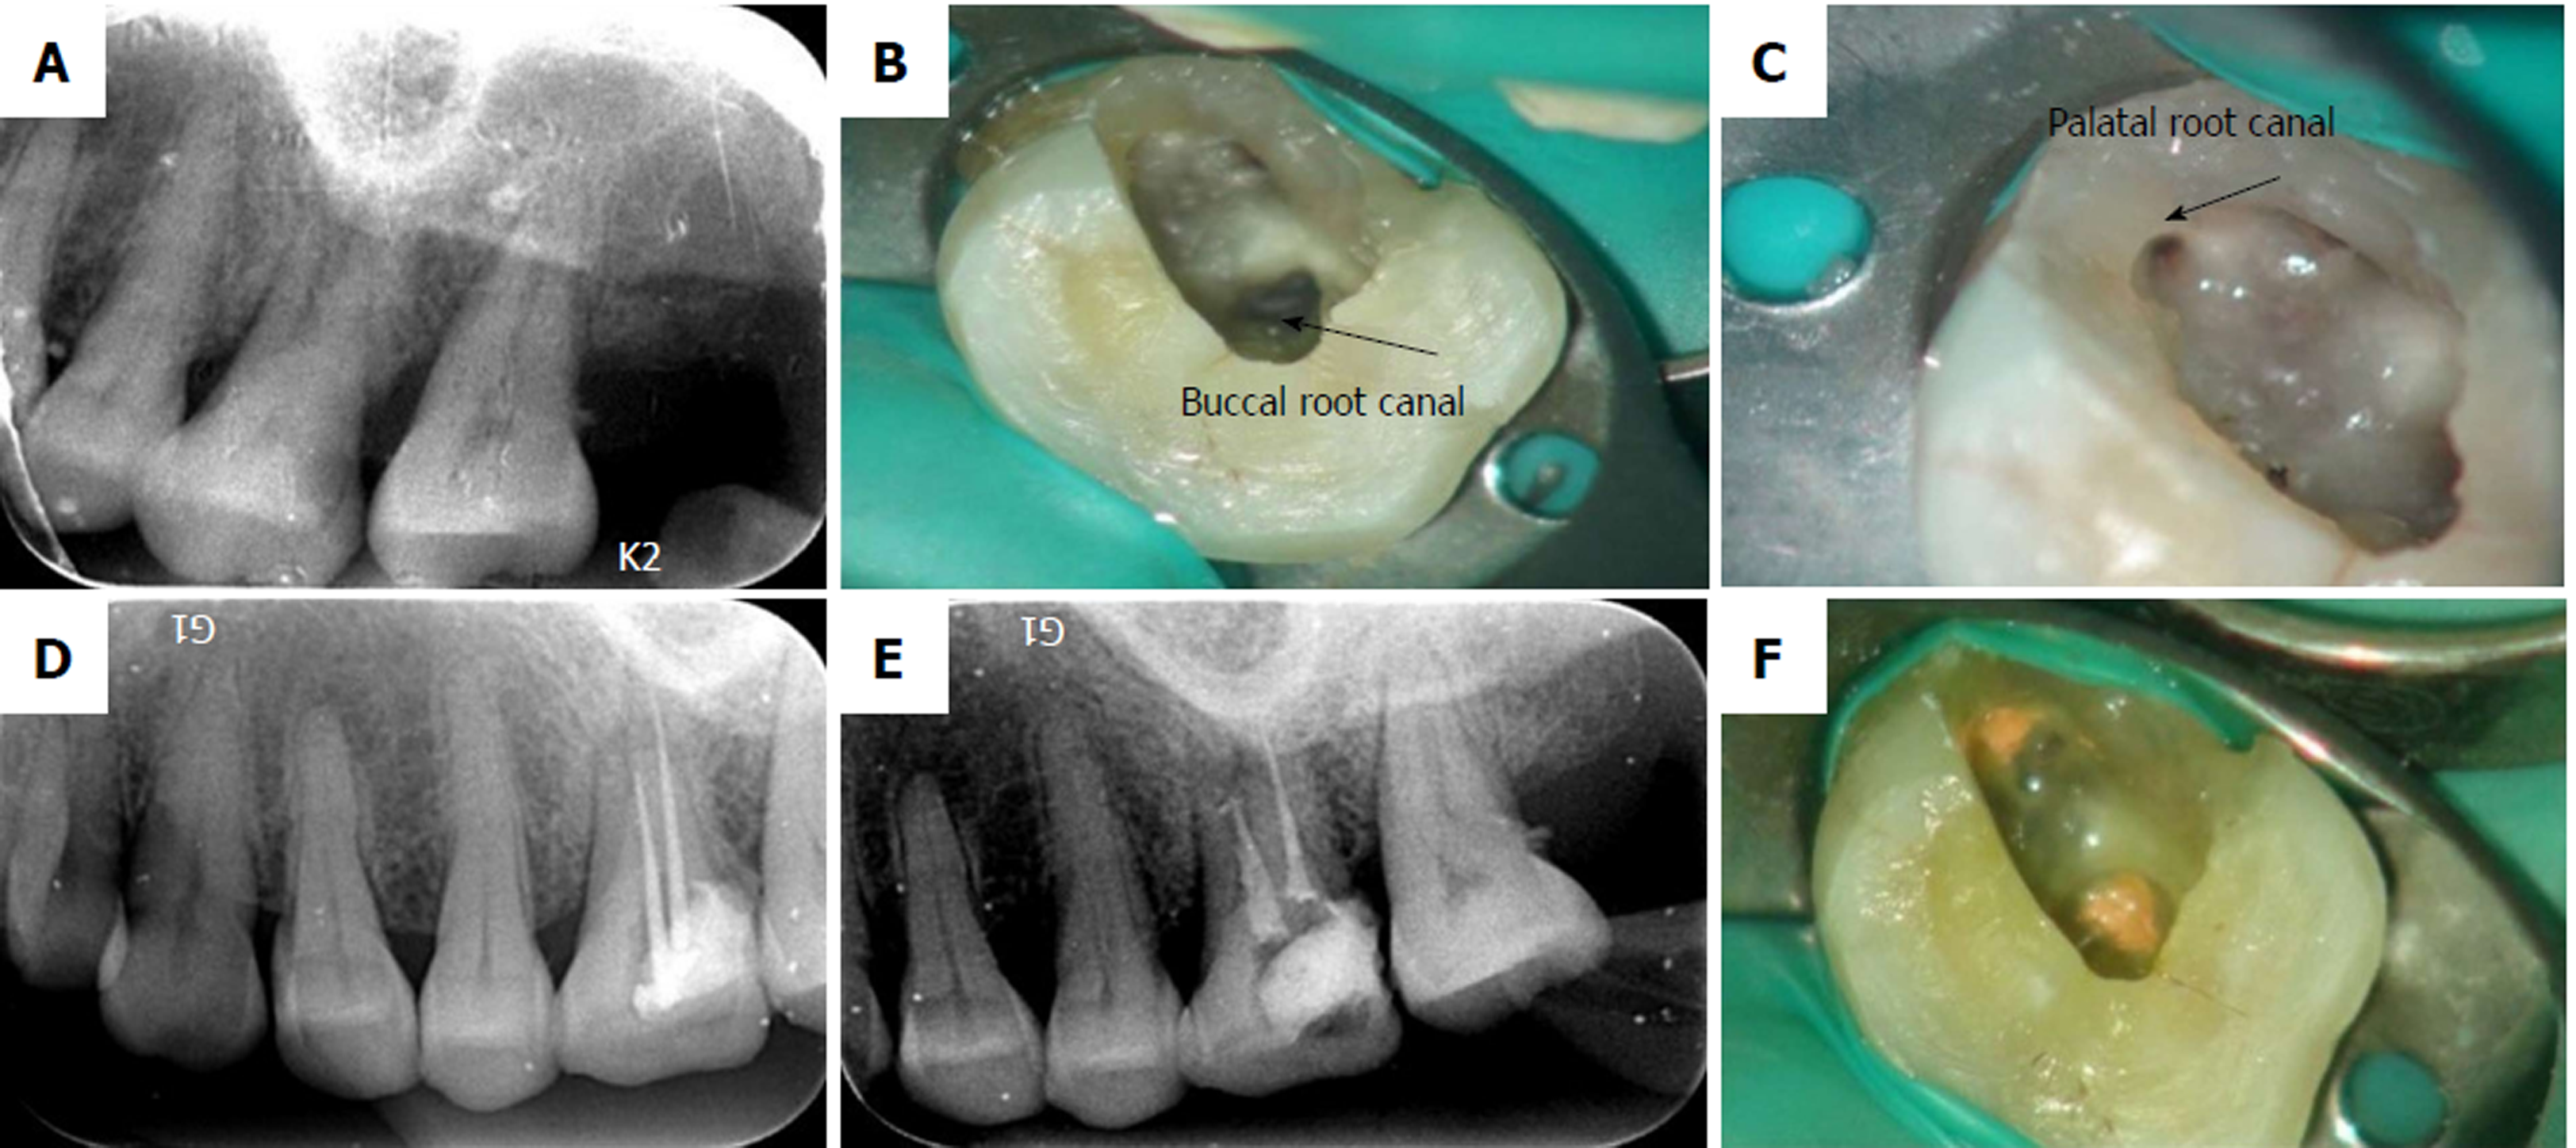 Endodontic management of the maxillary first molars with two